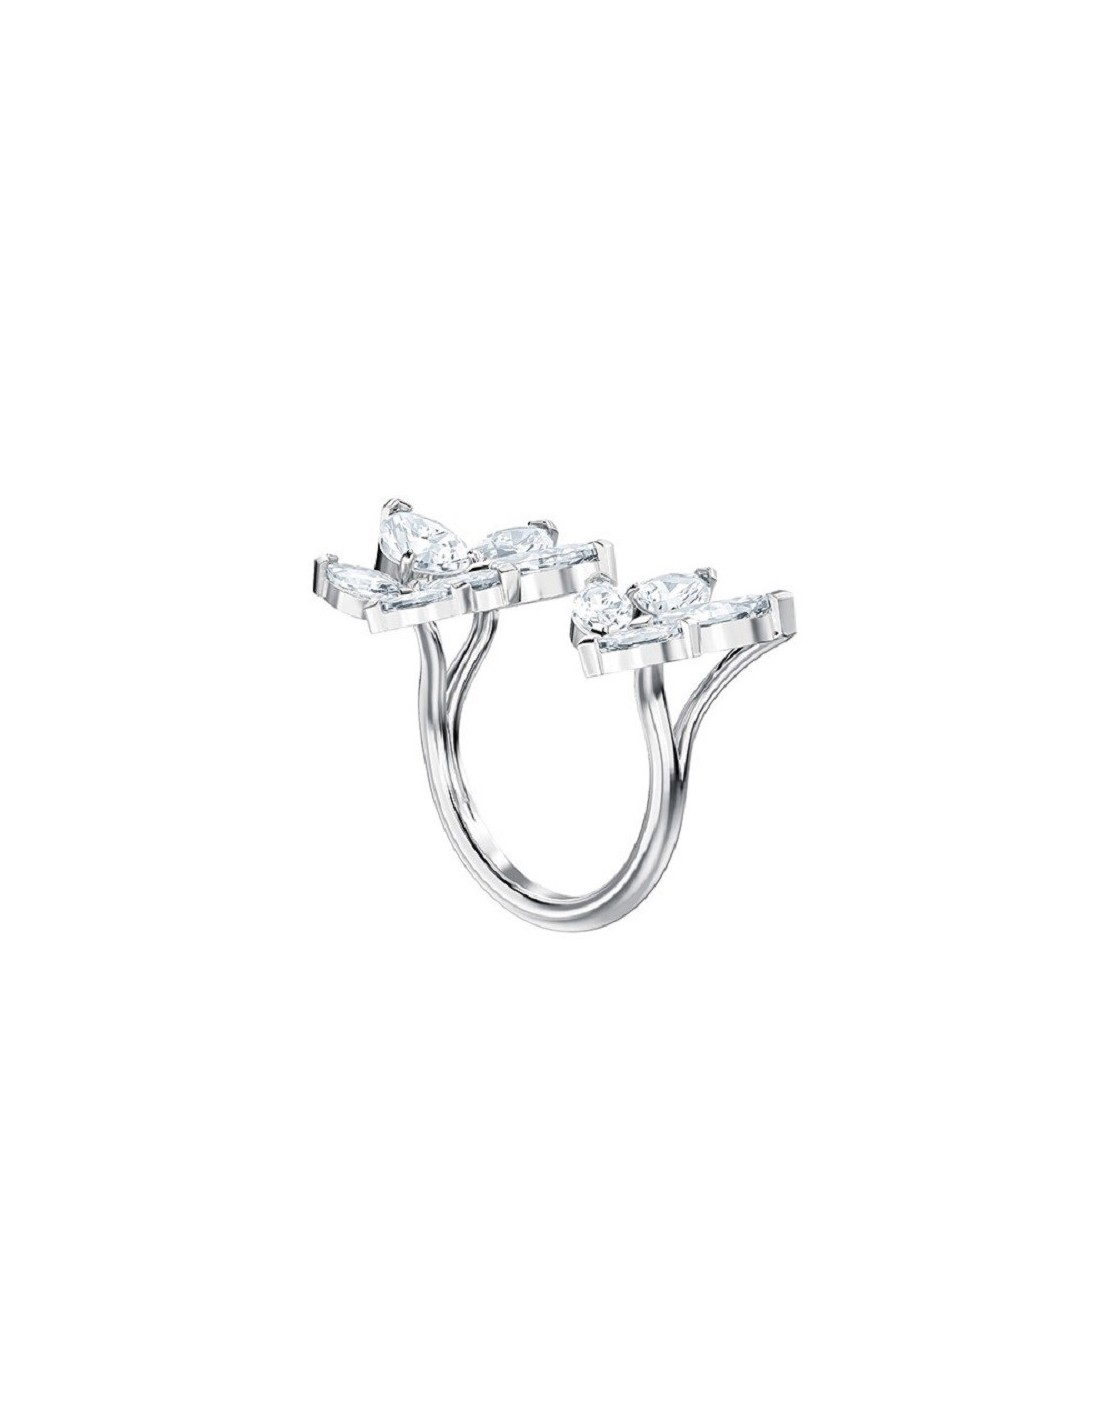 105f40ef4 ... Ring Louison swarovski plating rhodium jewelry size 55 5372962. Previous